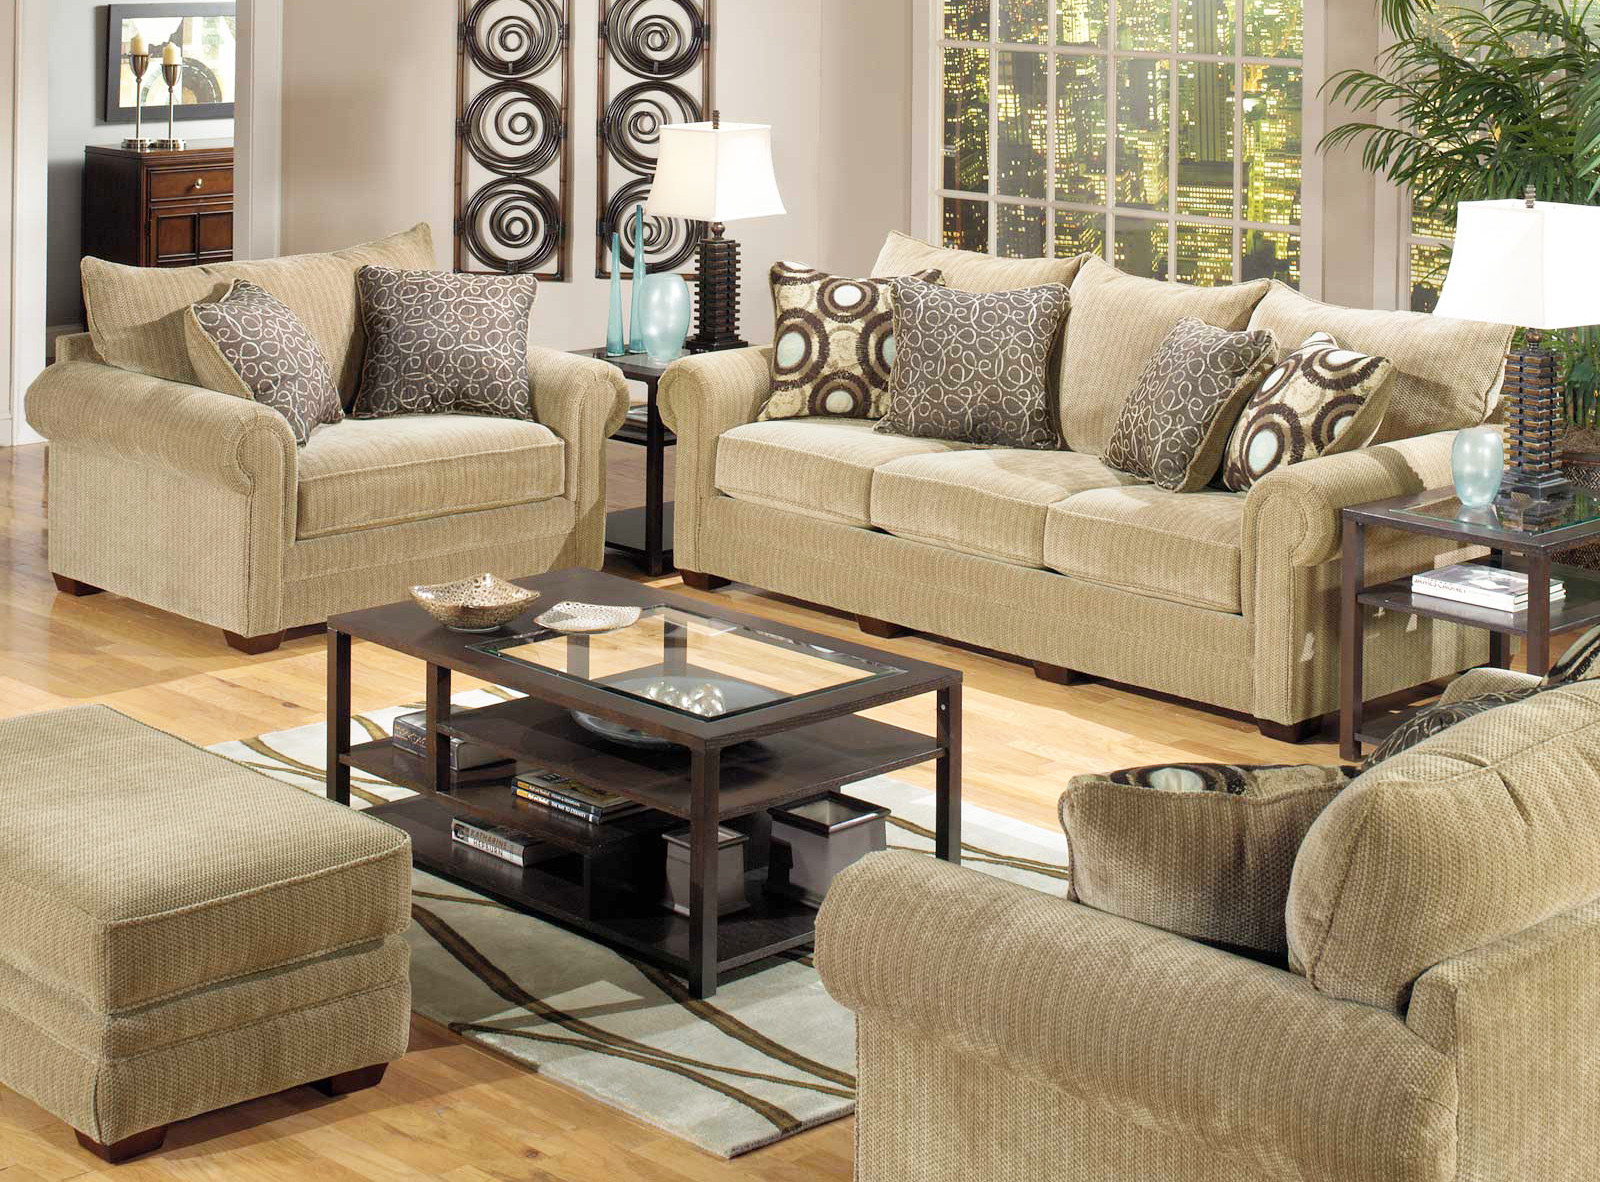 Best ideas about Furniture Ideas For Living Room . Save or Pin Three Furniture Arrangement Tips that Will Make Room Looks Now.